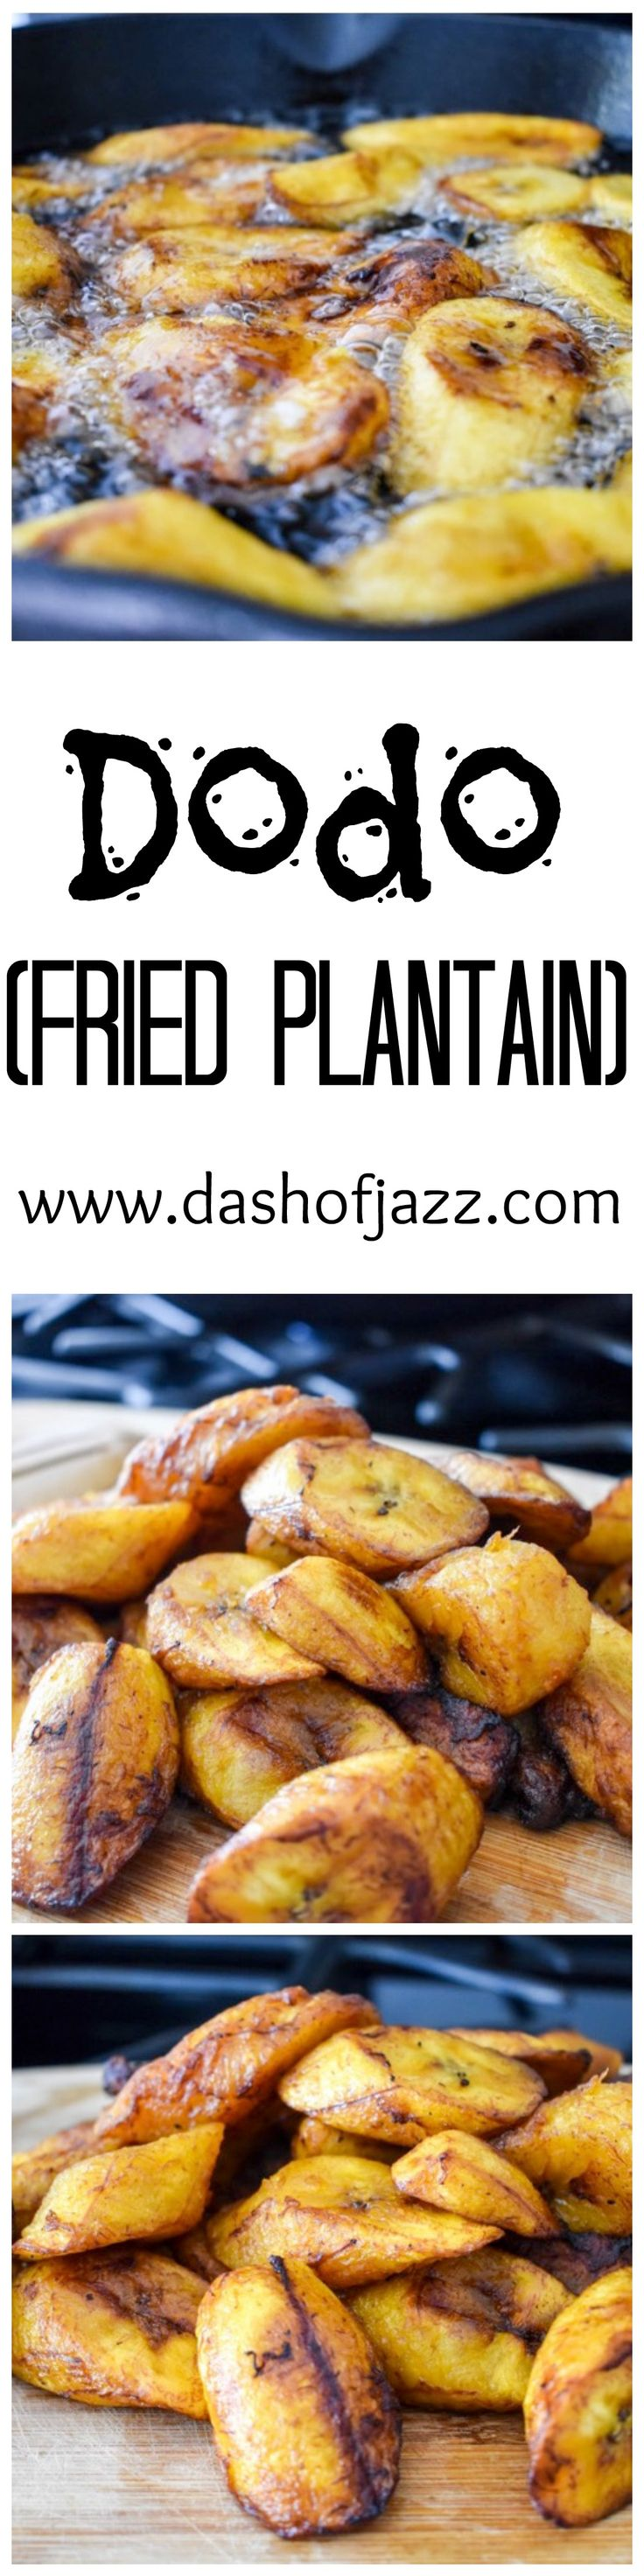 Dodo (Fried Plantain): easy, 2-ingredient snack or appetizer popular in West African, Caribbean, and Latin American cuisines | Dash of Jazz